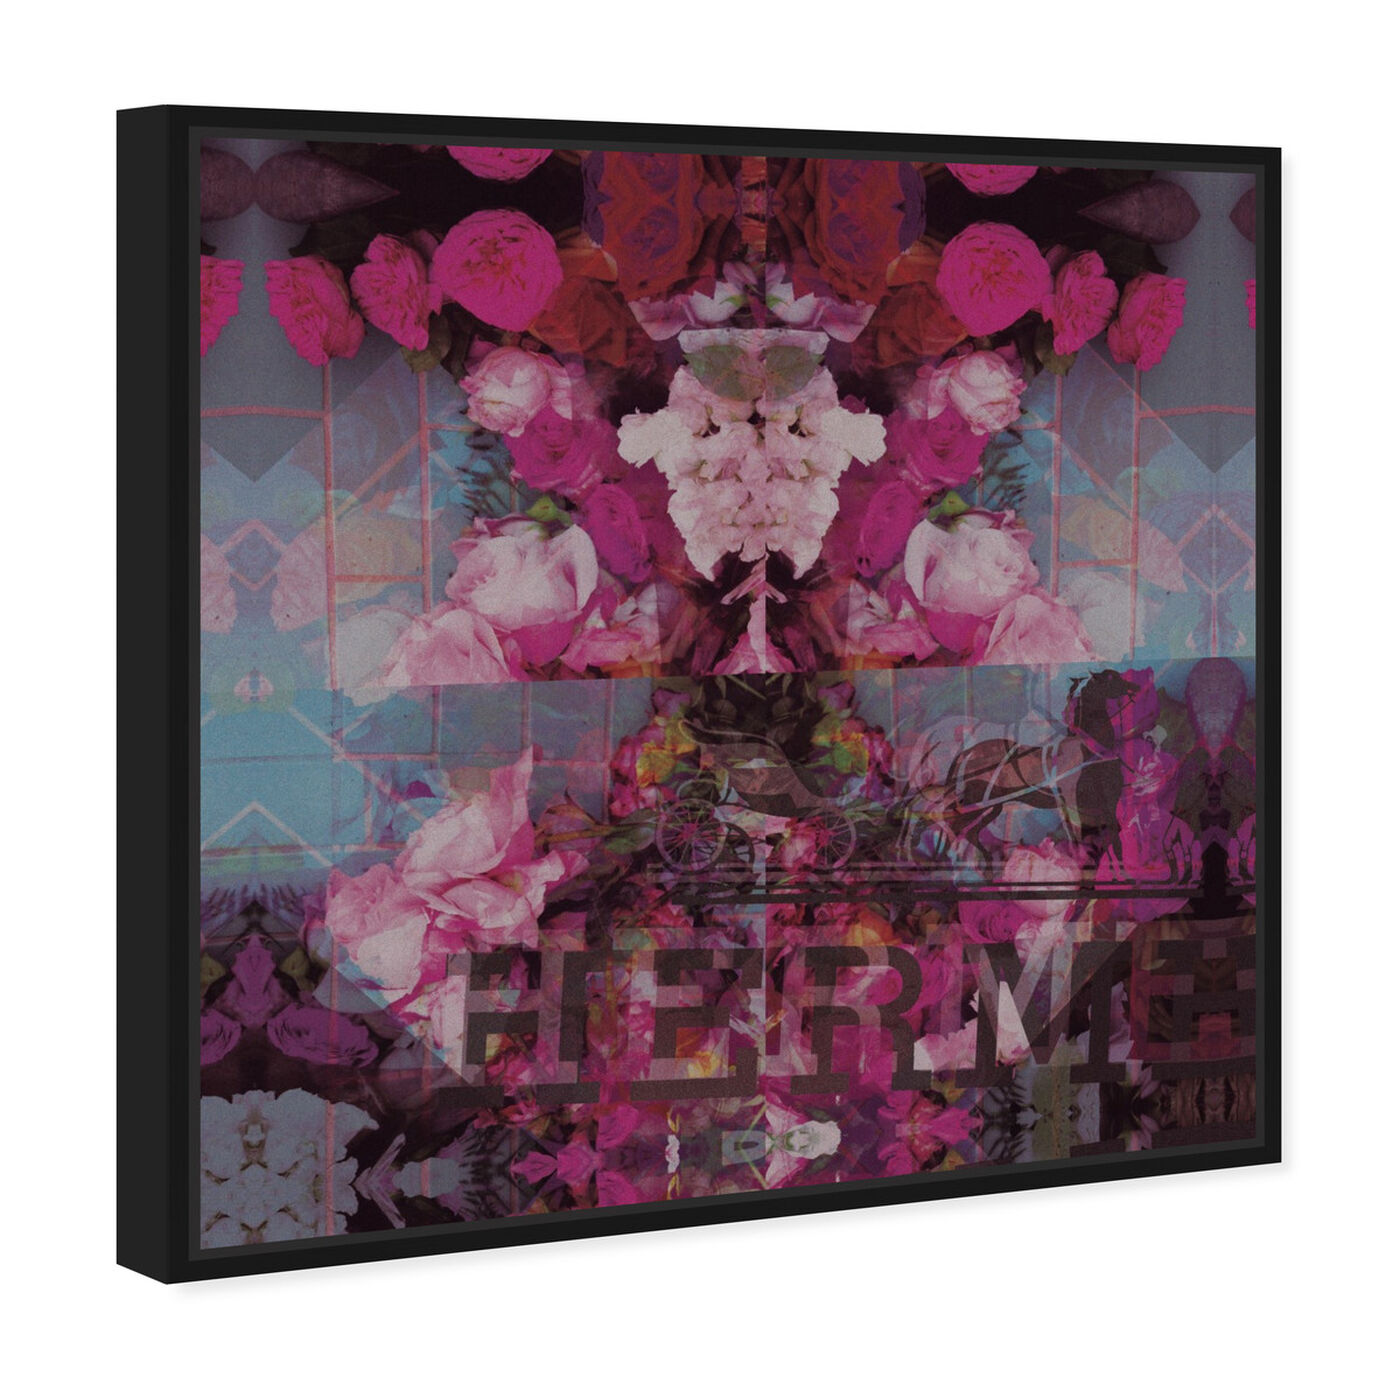 Angled view of Sublime Illusion featuring floral and botanical and florals art.